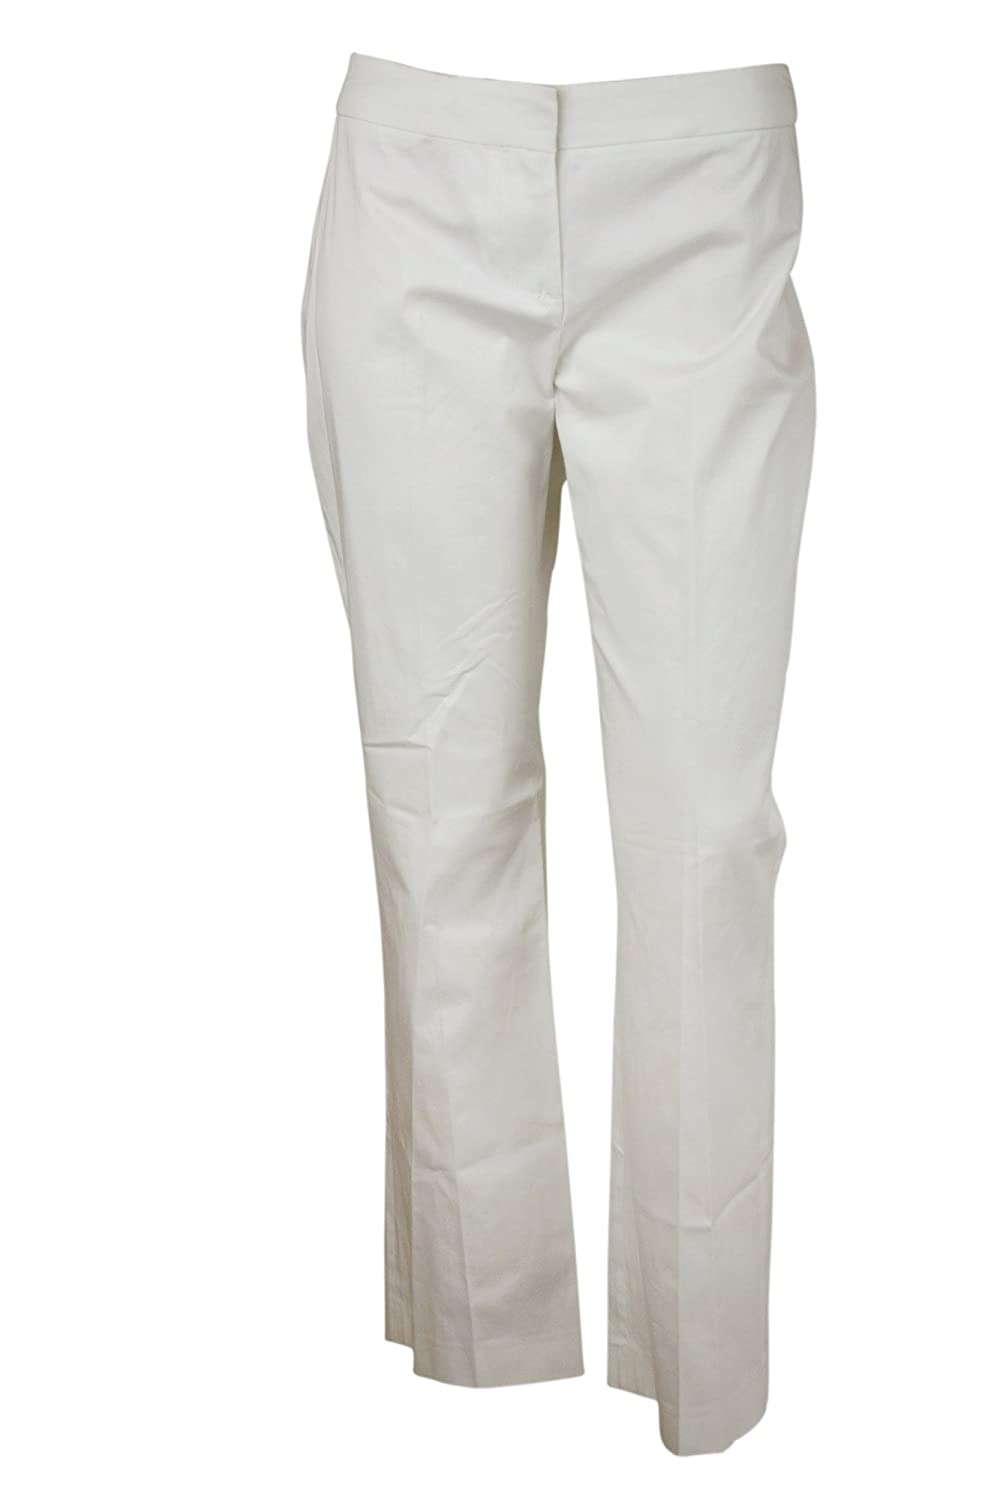 Derek Lam Womens Cropped Straight Leg Dress Pants